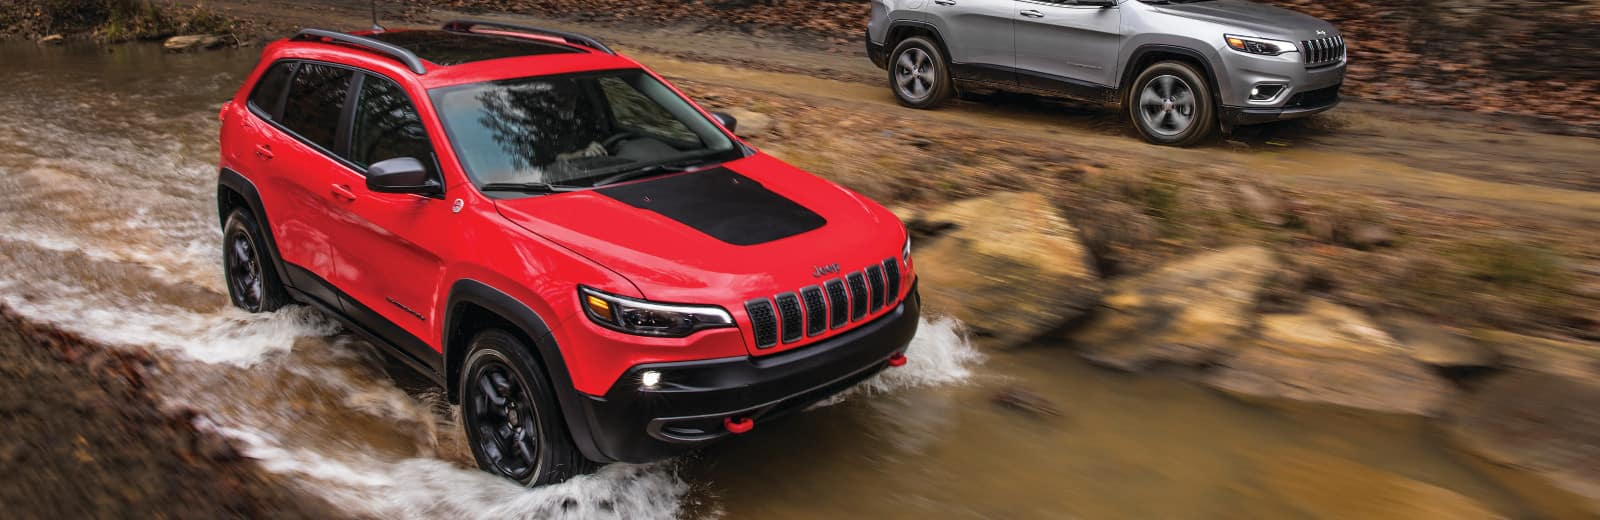 A red 2019 Jeep Cherokee driving through a river